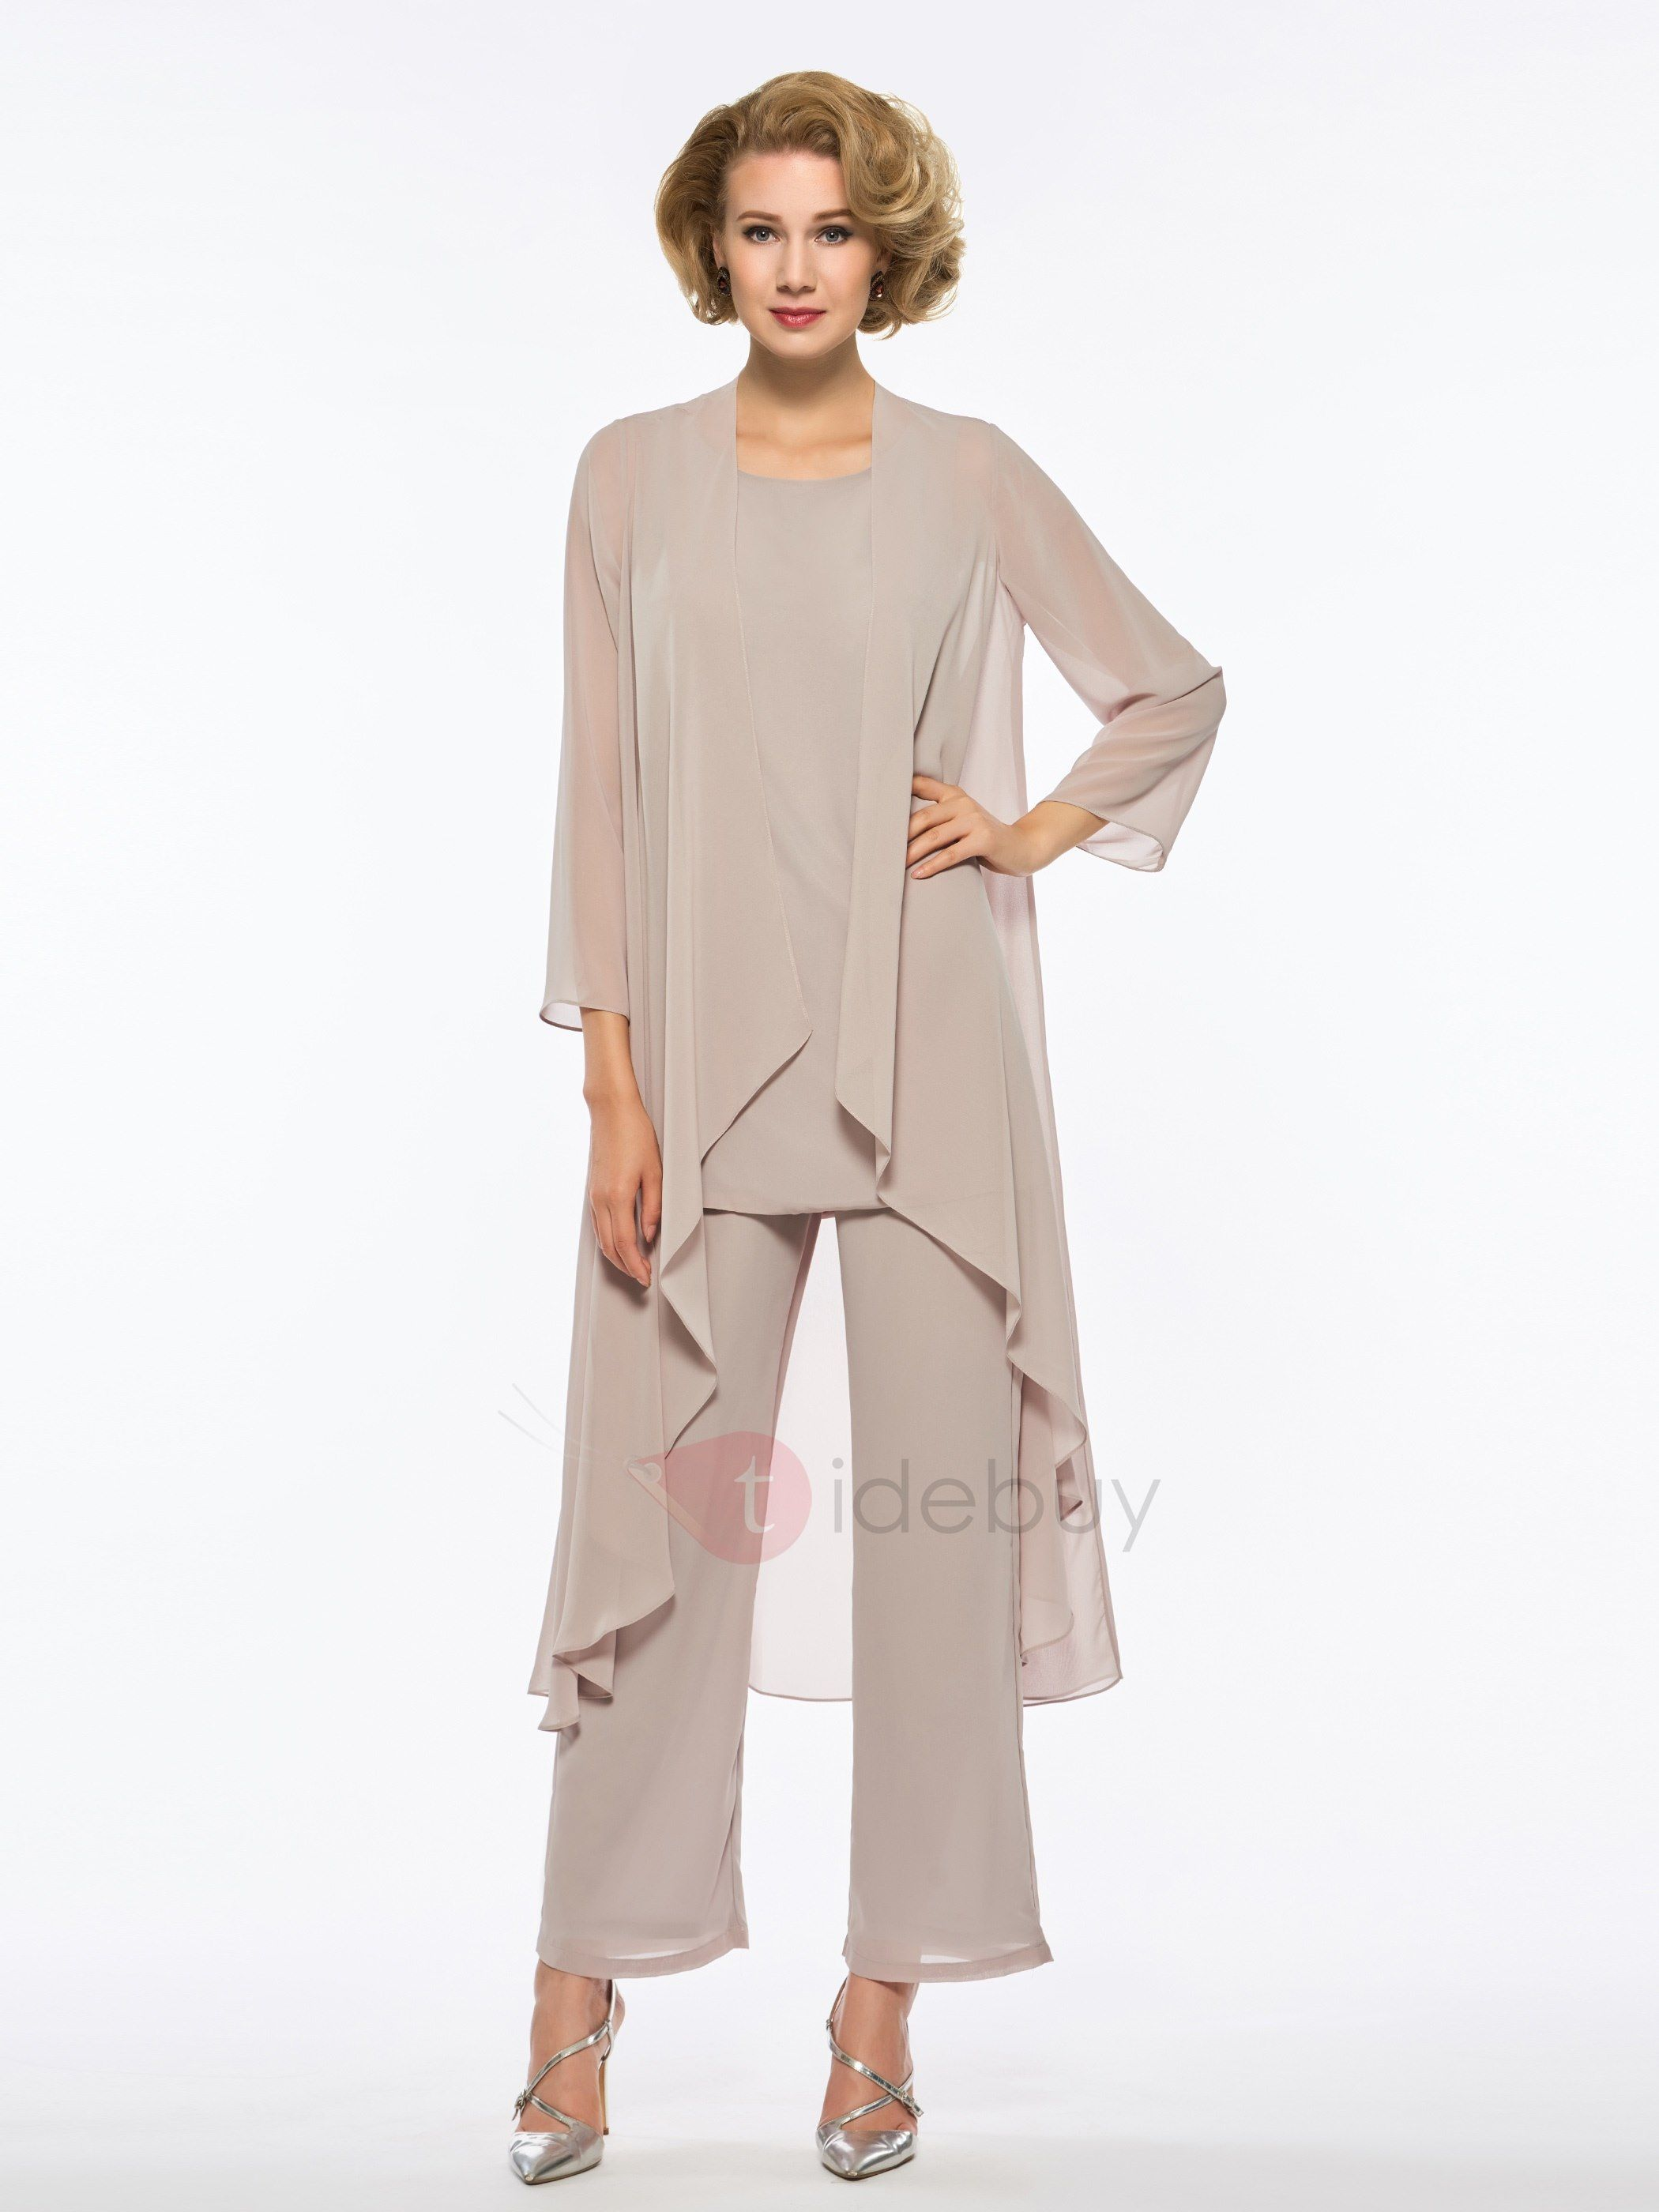 7d67a84a689 Tidebuy.com Offers High Quality Hot Mother of the Bride Jumpsuit with Long  Sleeve Jacket